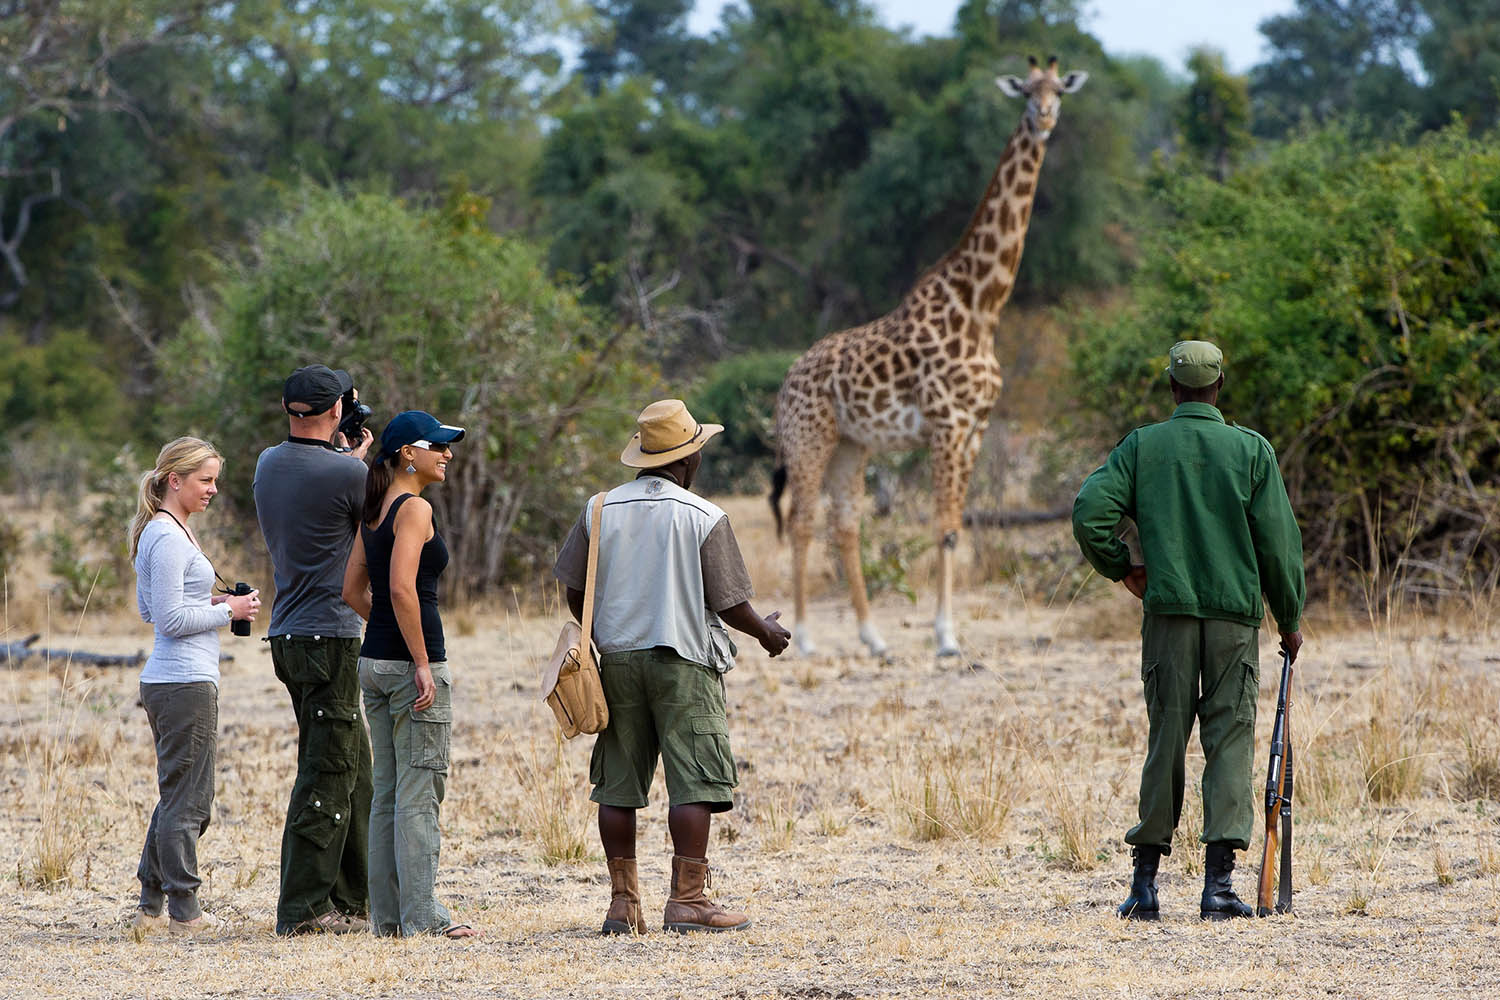 flatdogs-camp-zambia-in-style-tours-safari-packages-lodges-explore-south-luangwa-national-park-walking-safari-with-giraffe